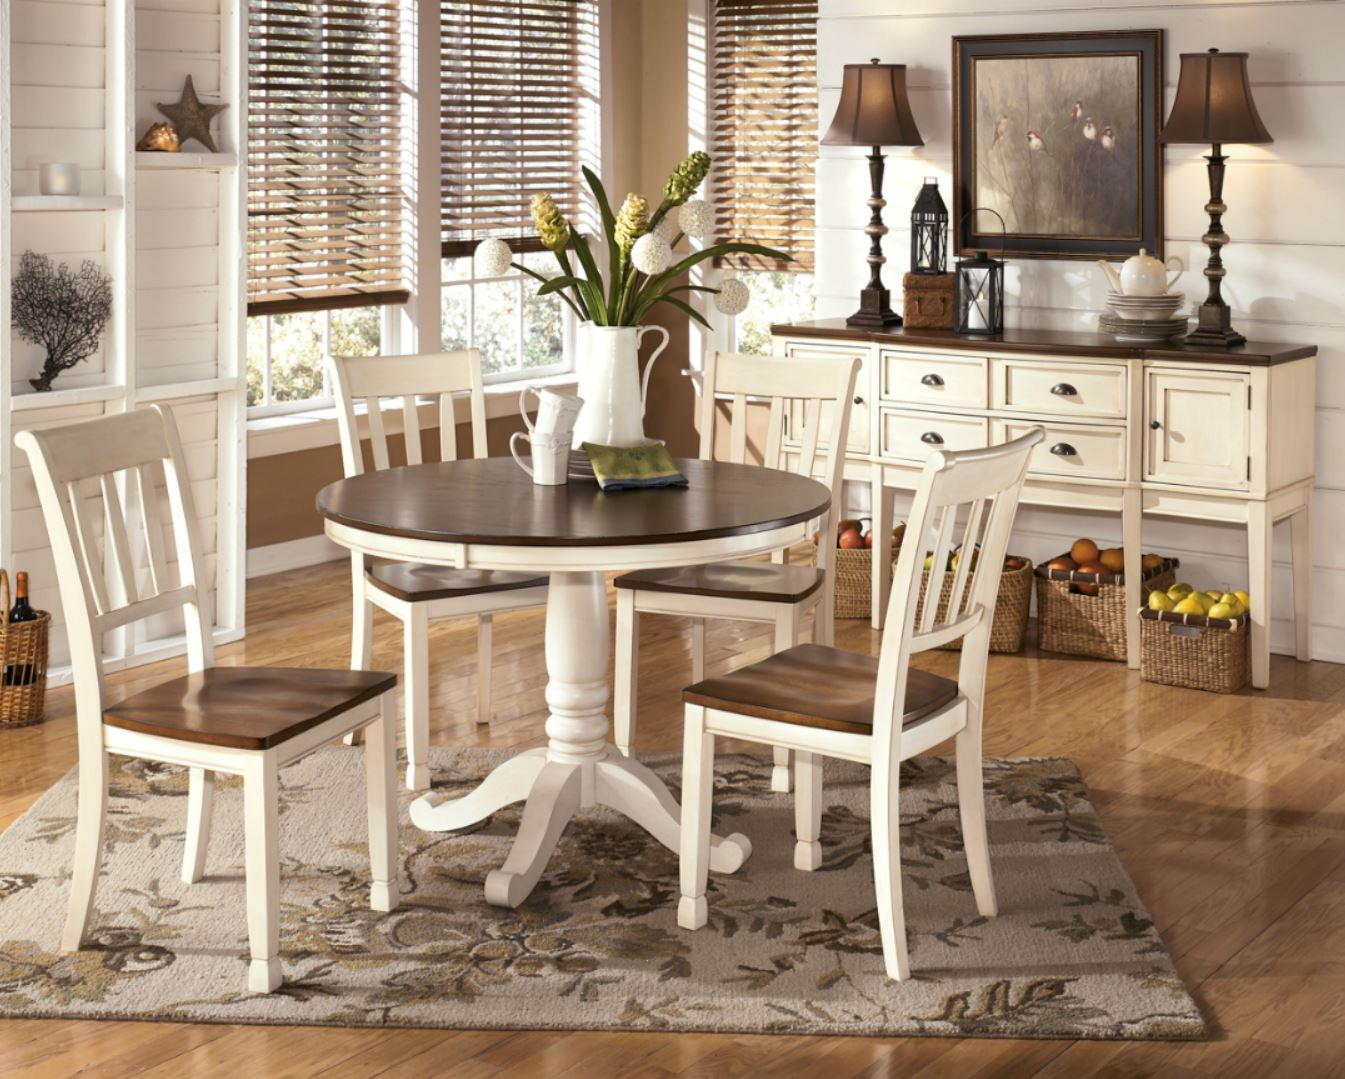 Hungry For Style: Vintage Country Dining